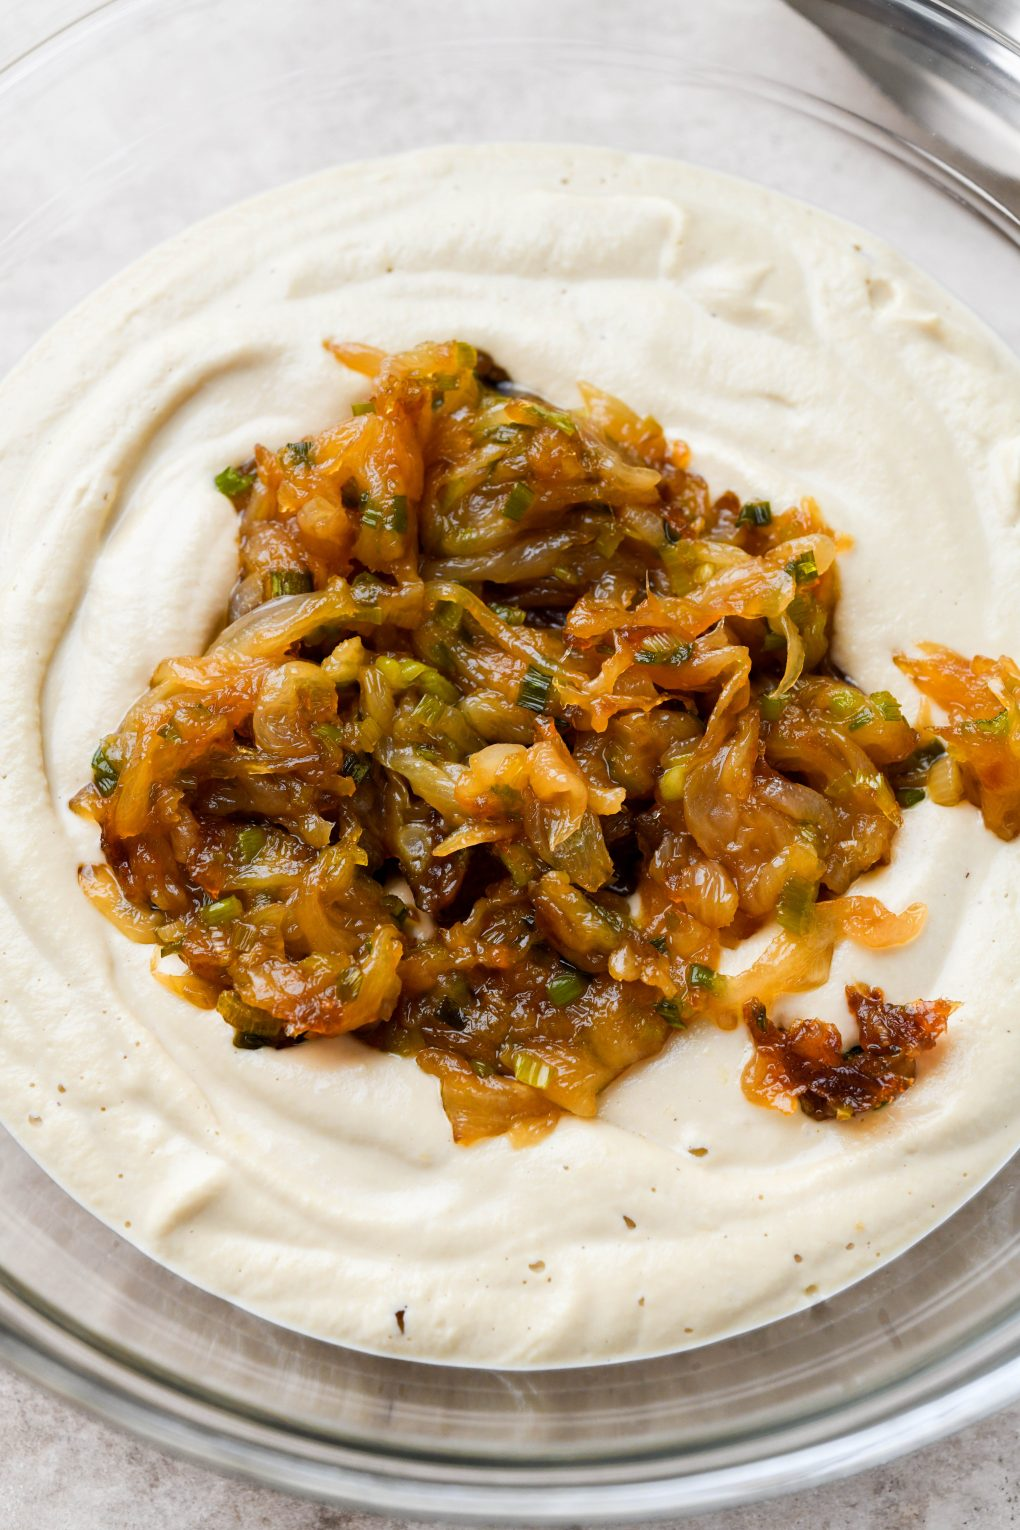 Image of a glass bowl of cashew cream base for french onion dip, topped with a large portion of caramelized onions.